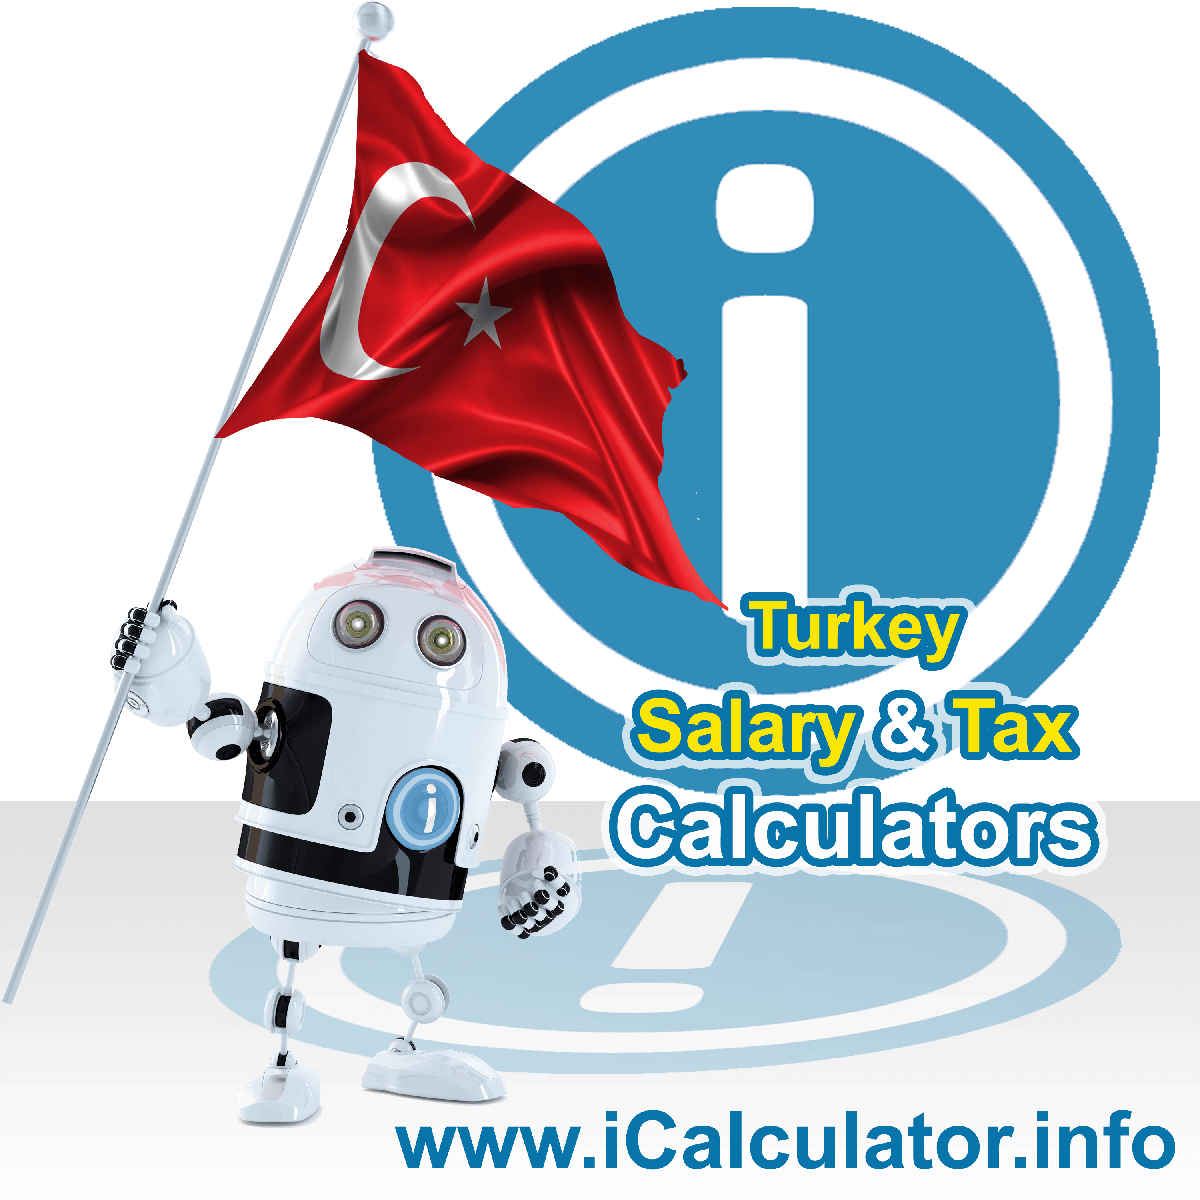 Turkey Salary Calculator. This image shows the Turkeyese flag and information relating to the tax formula for the Turkey Tax Calculator